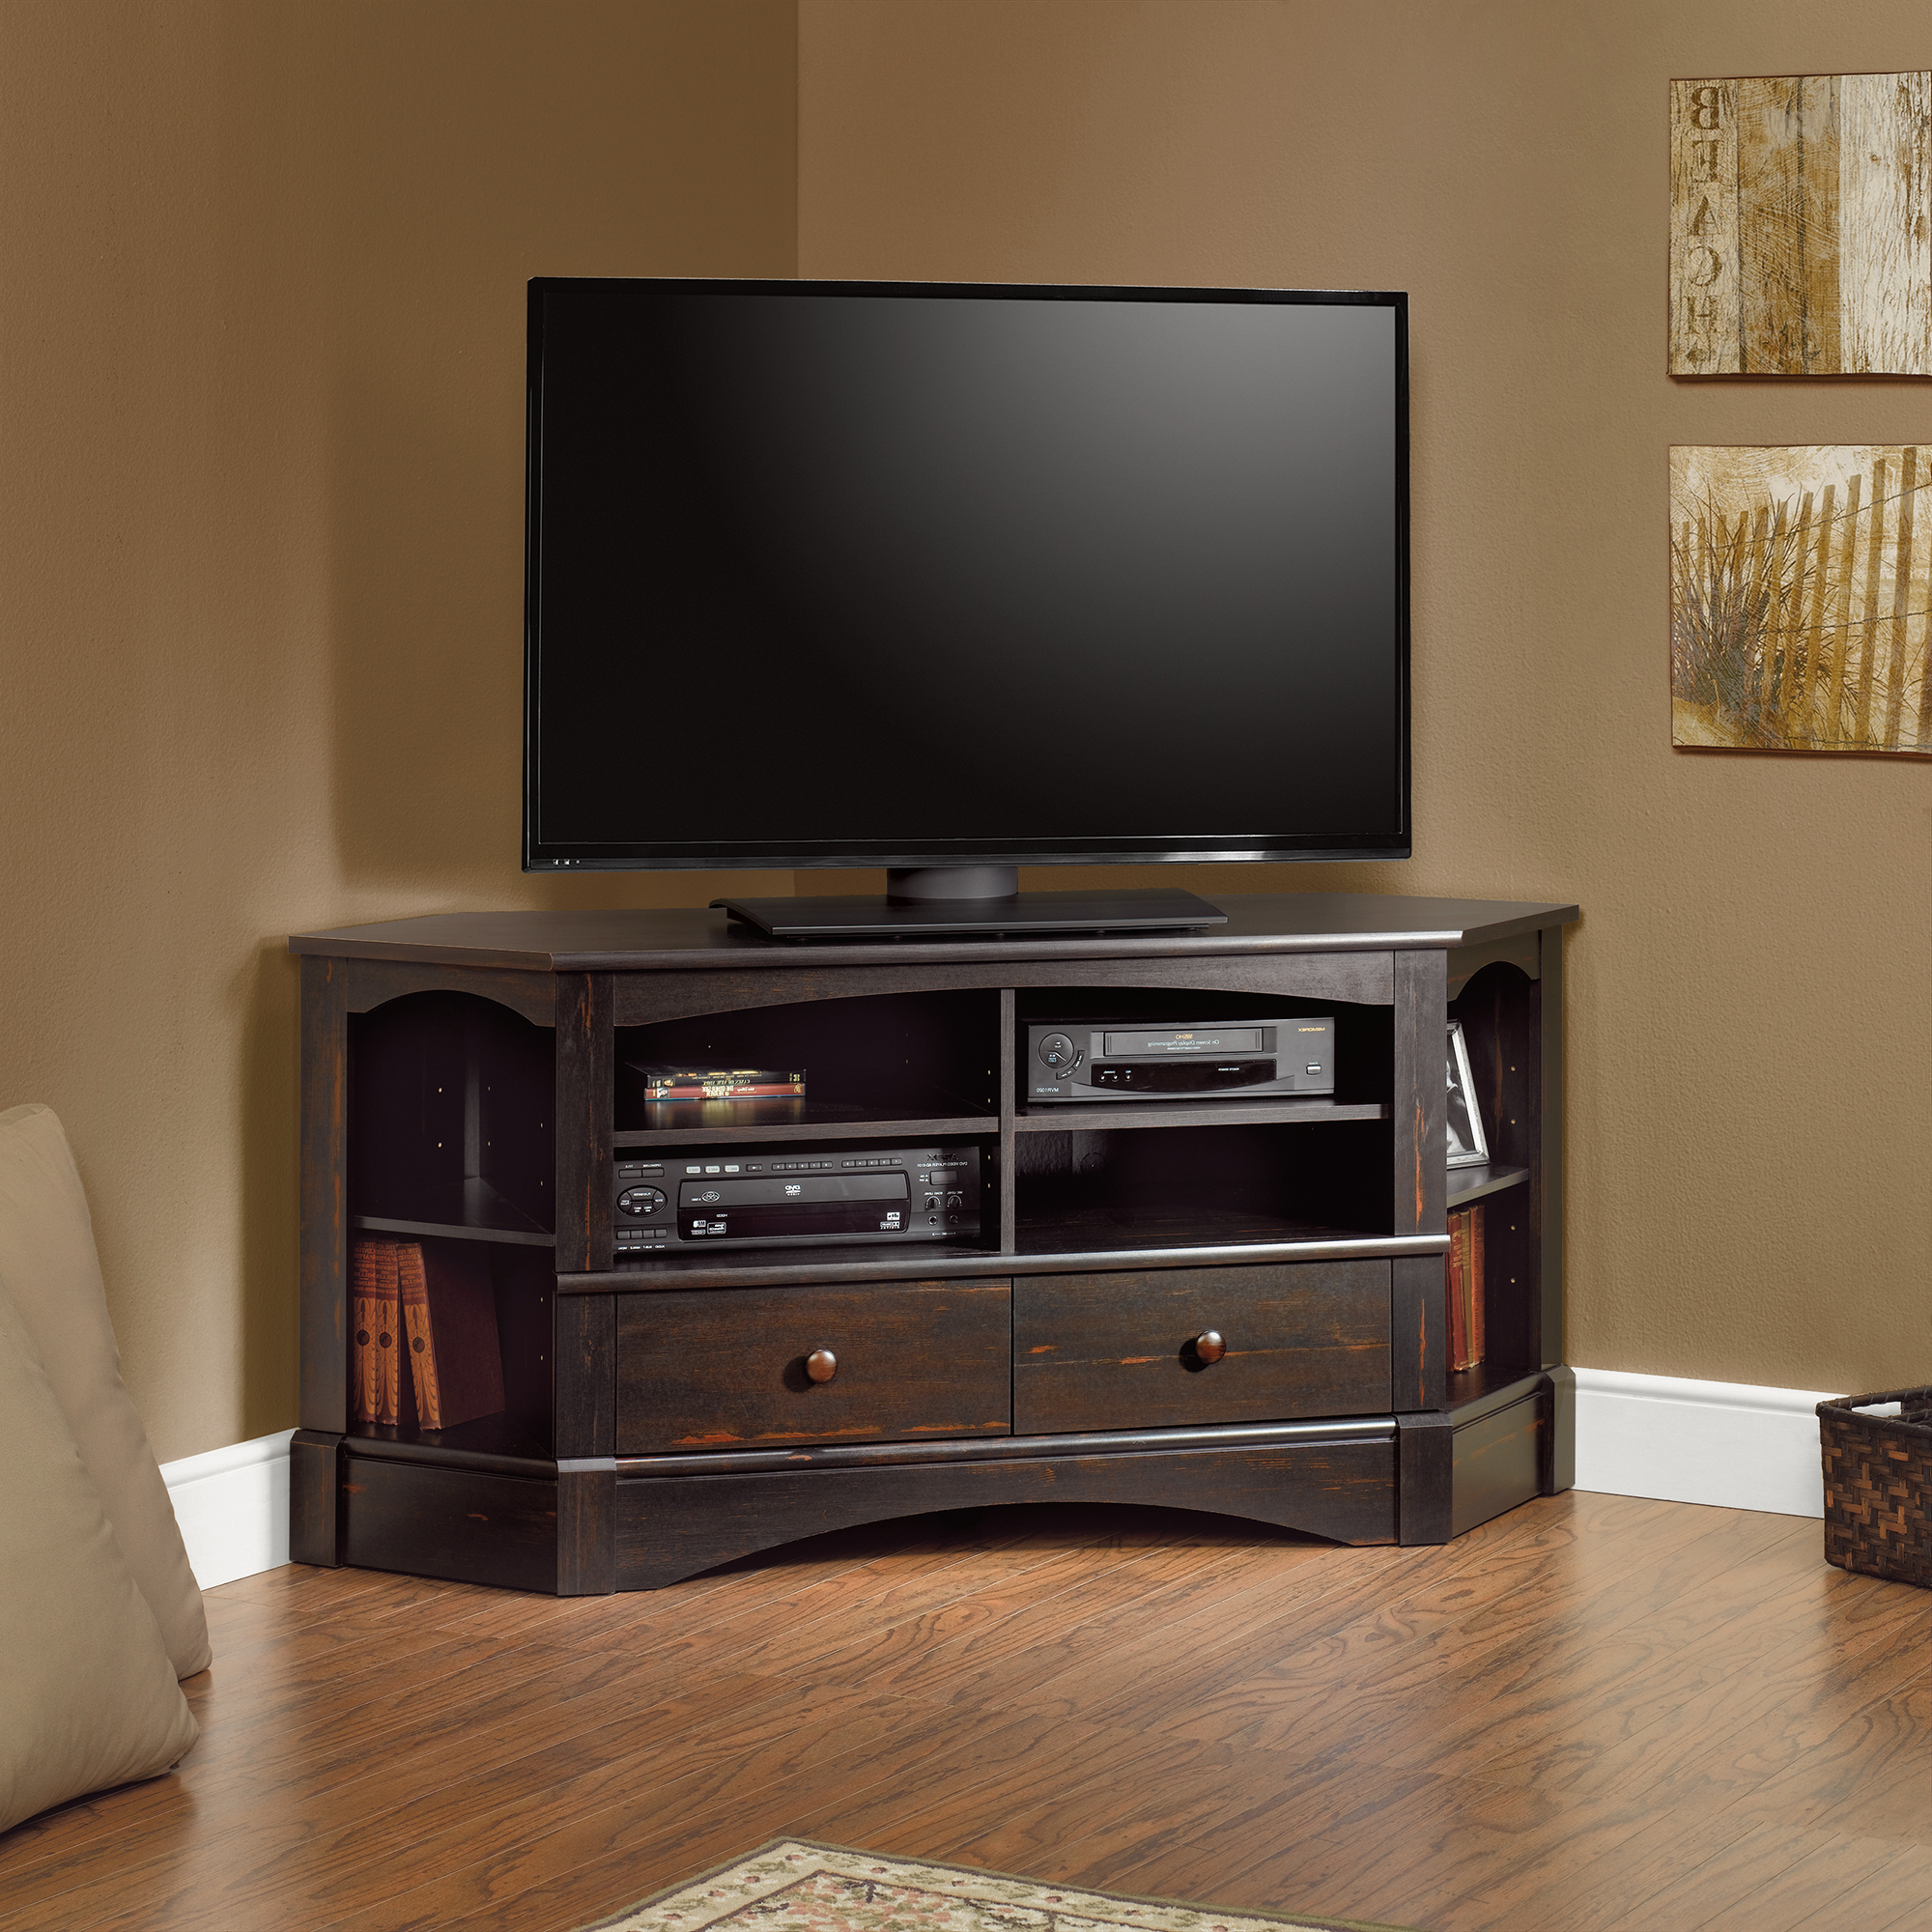 Sauder Intended For Black Wood Corner Tv Stands (View 14 of 20)